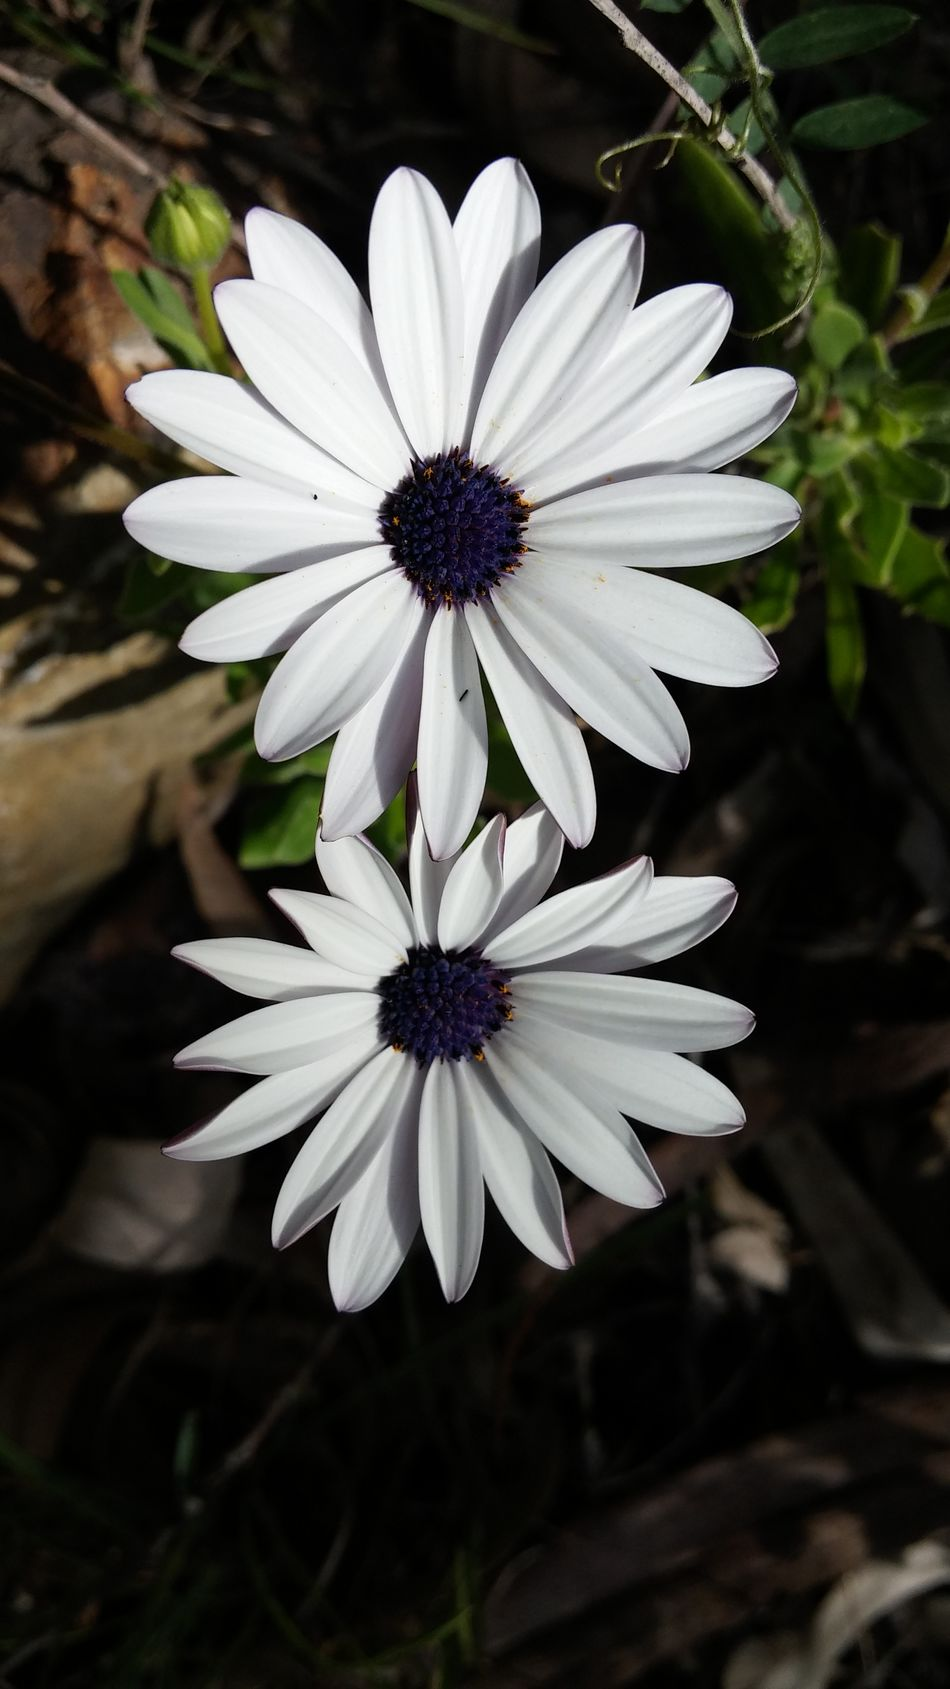 Flower Fragility White Color Petal Plant Nature Flower Head Beauty In Nature Close-up Freshness No People Day Outdoors Focus On Foreground Growth Black Background Osteospermum Pollen Primavera Naturaleza Flores Cáceres (Spain) Leaf Summer Plant